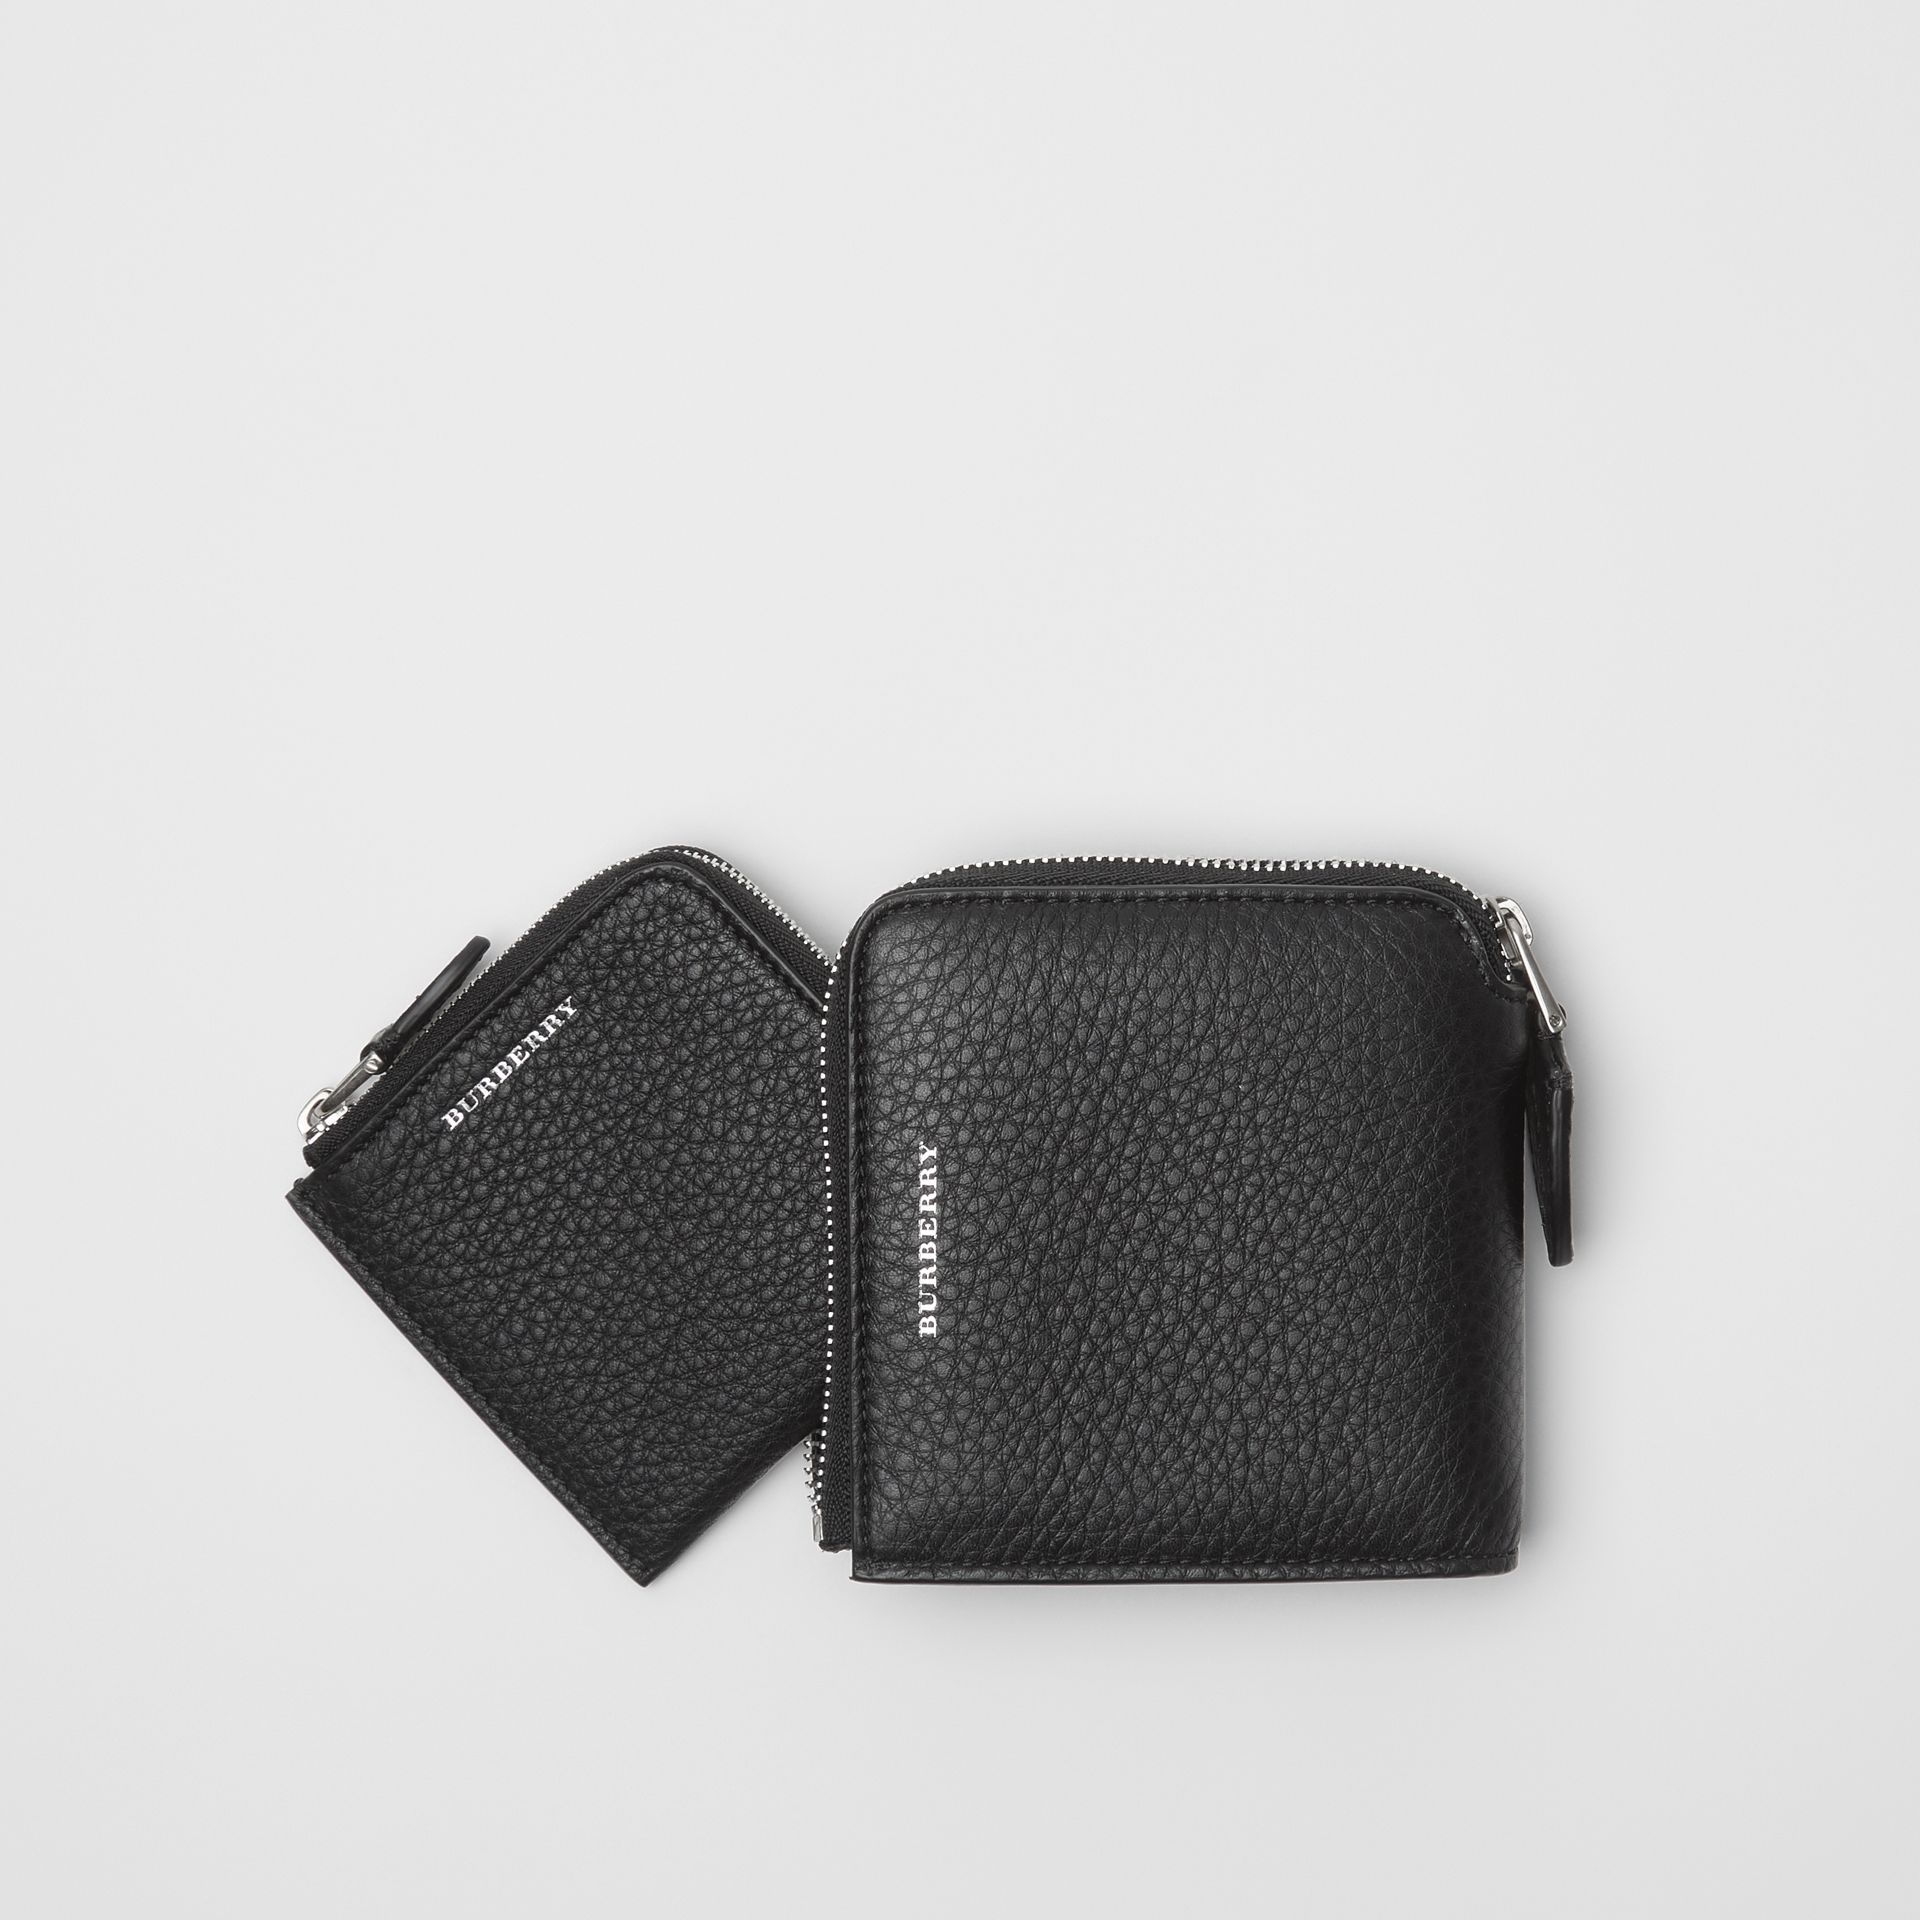 Grainy Leather Square Ziparound Wallet in Black - Women | Burberry - gallery image 2